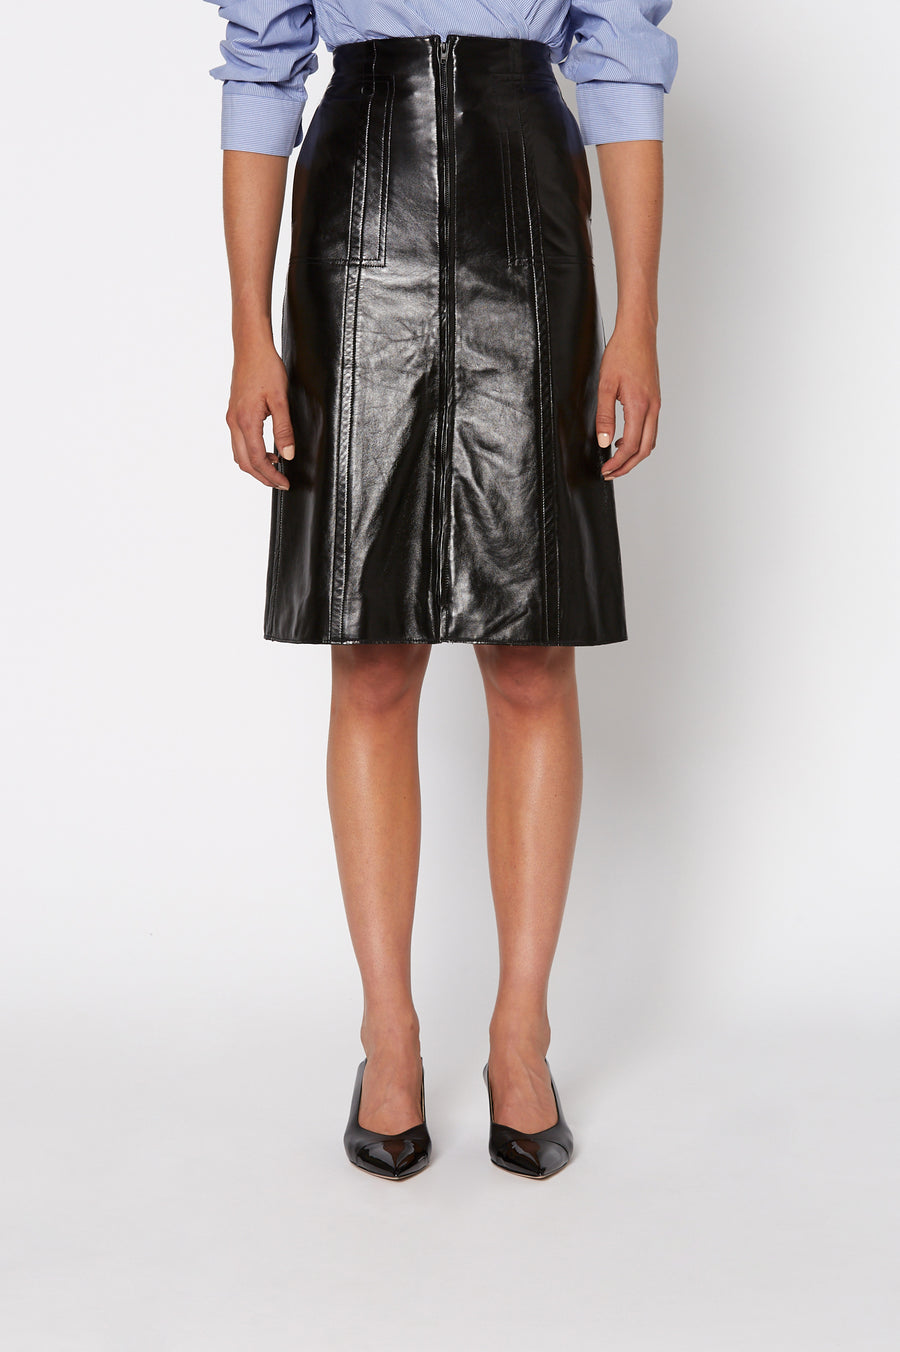 Leather Patent Skirt, 100% leather, zip fastening at the front, sits high on waist, falls just below knee, Color Black